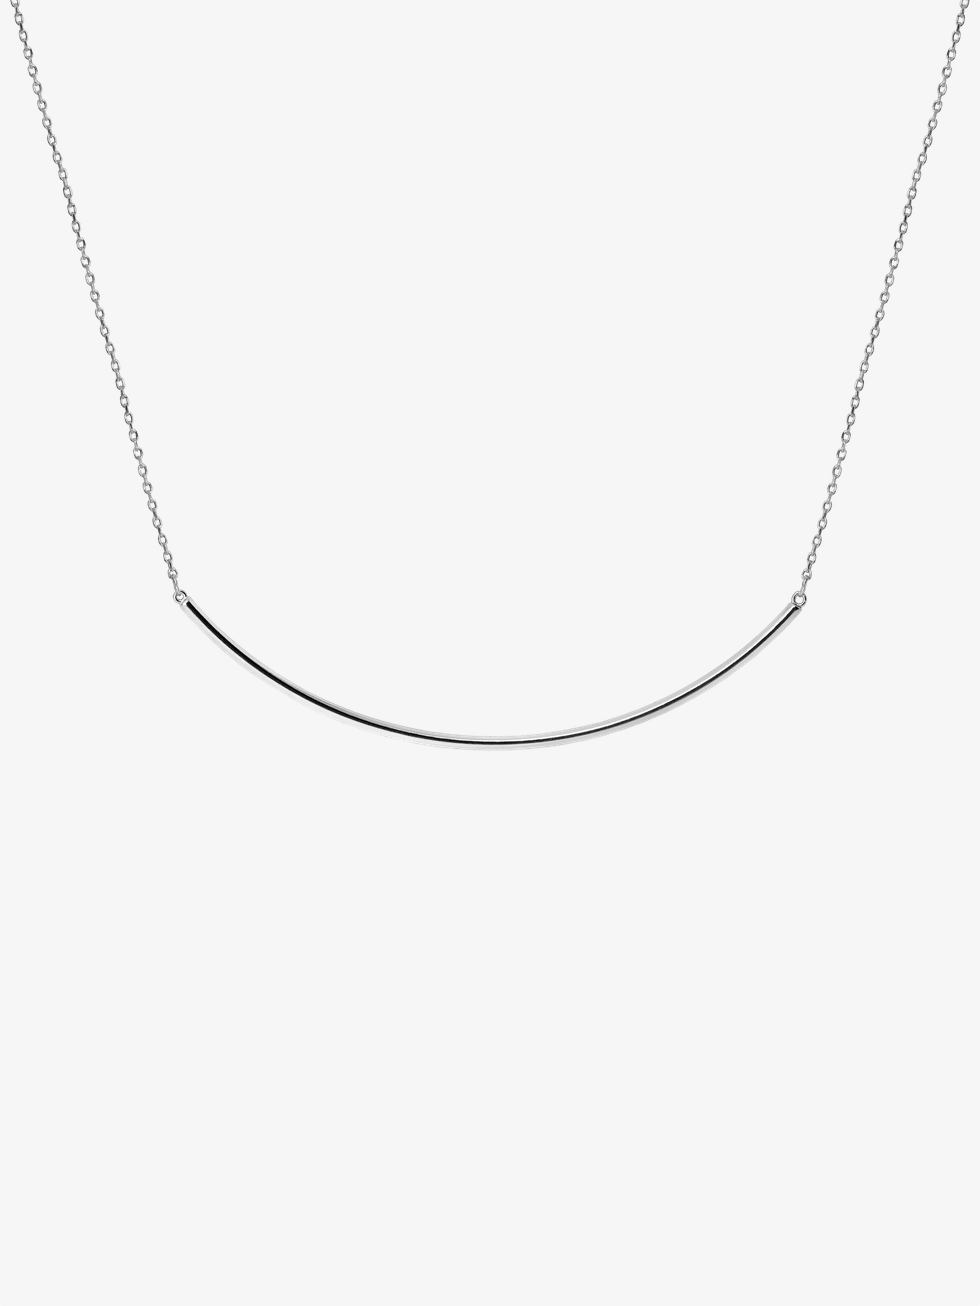 XLine silver necklace